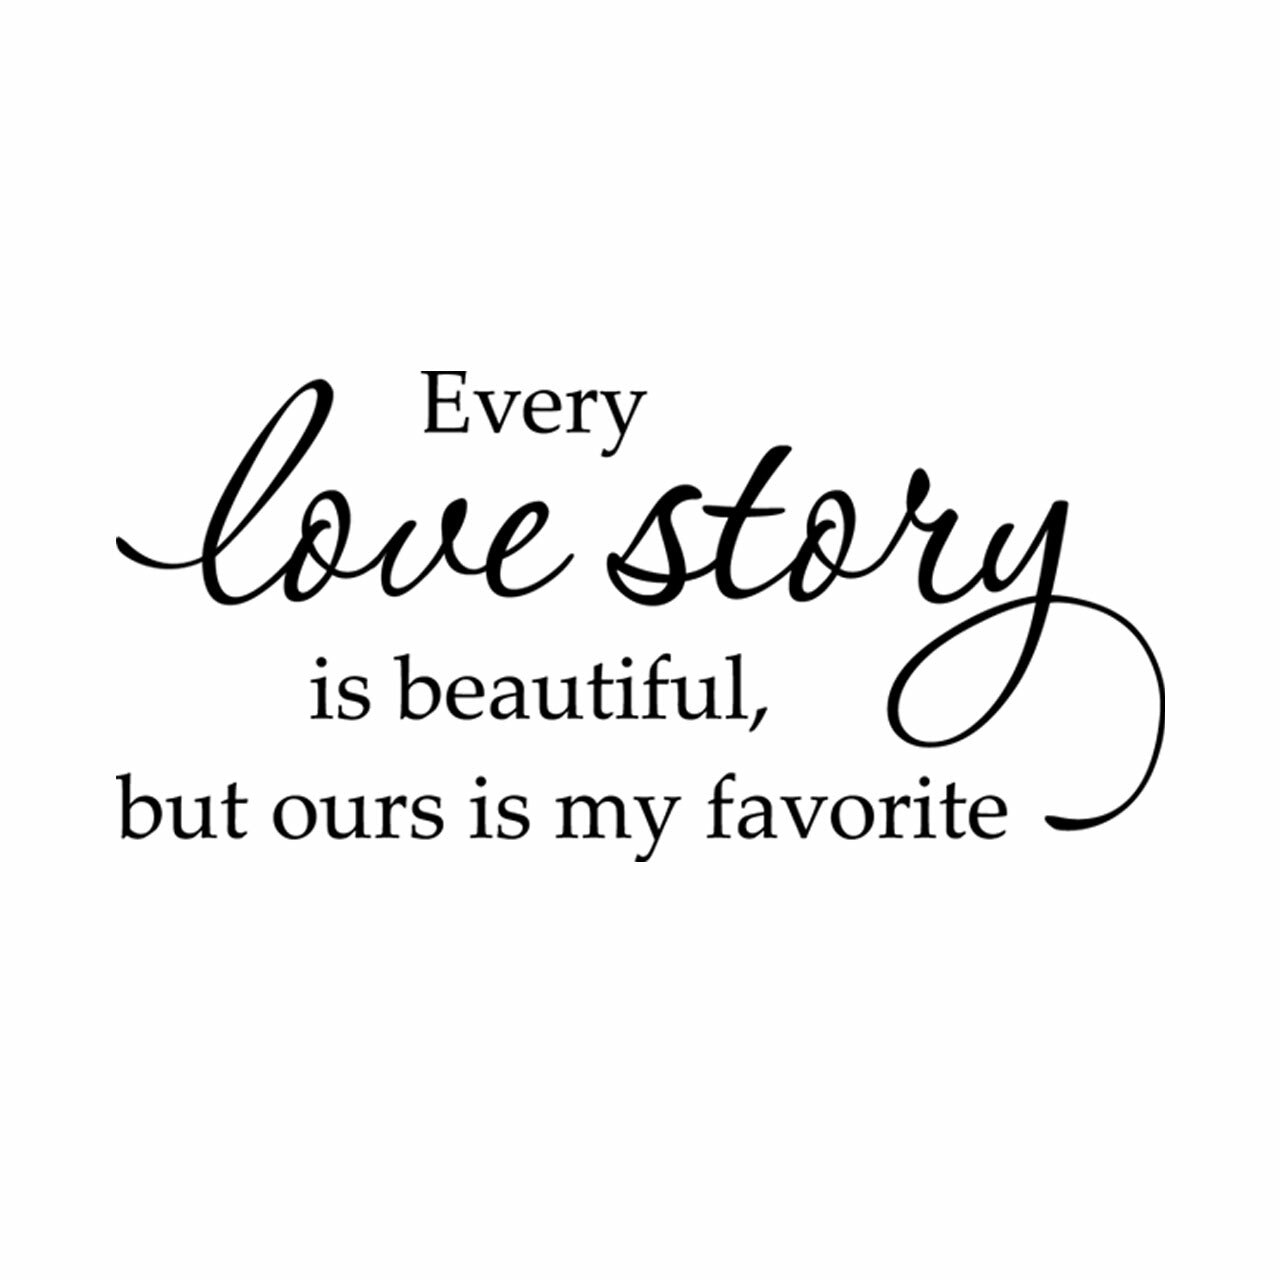 Every love story is beautiful but ours is my favorite vinyl saying on white background